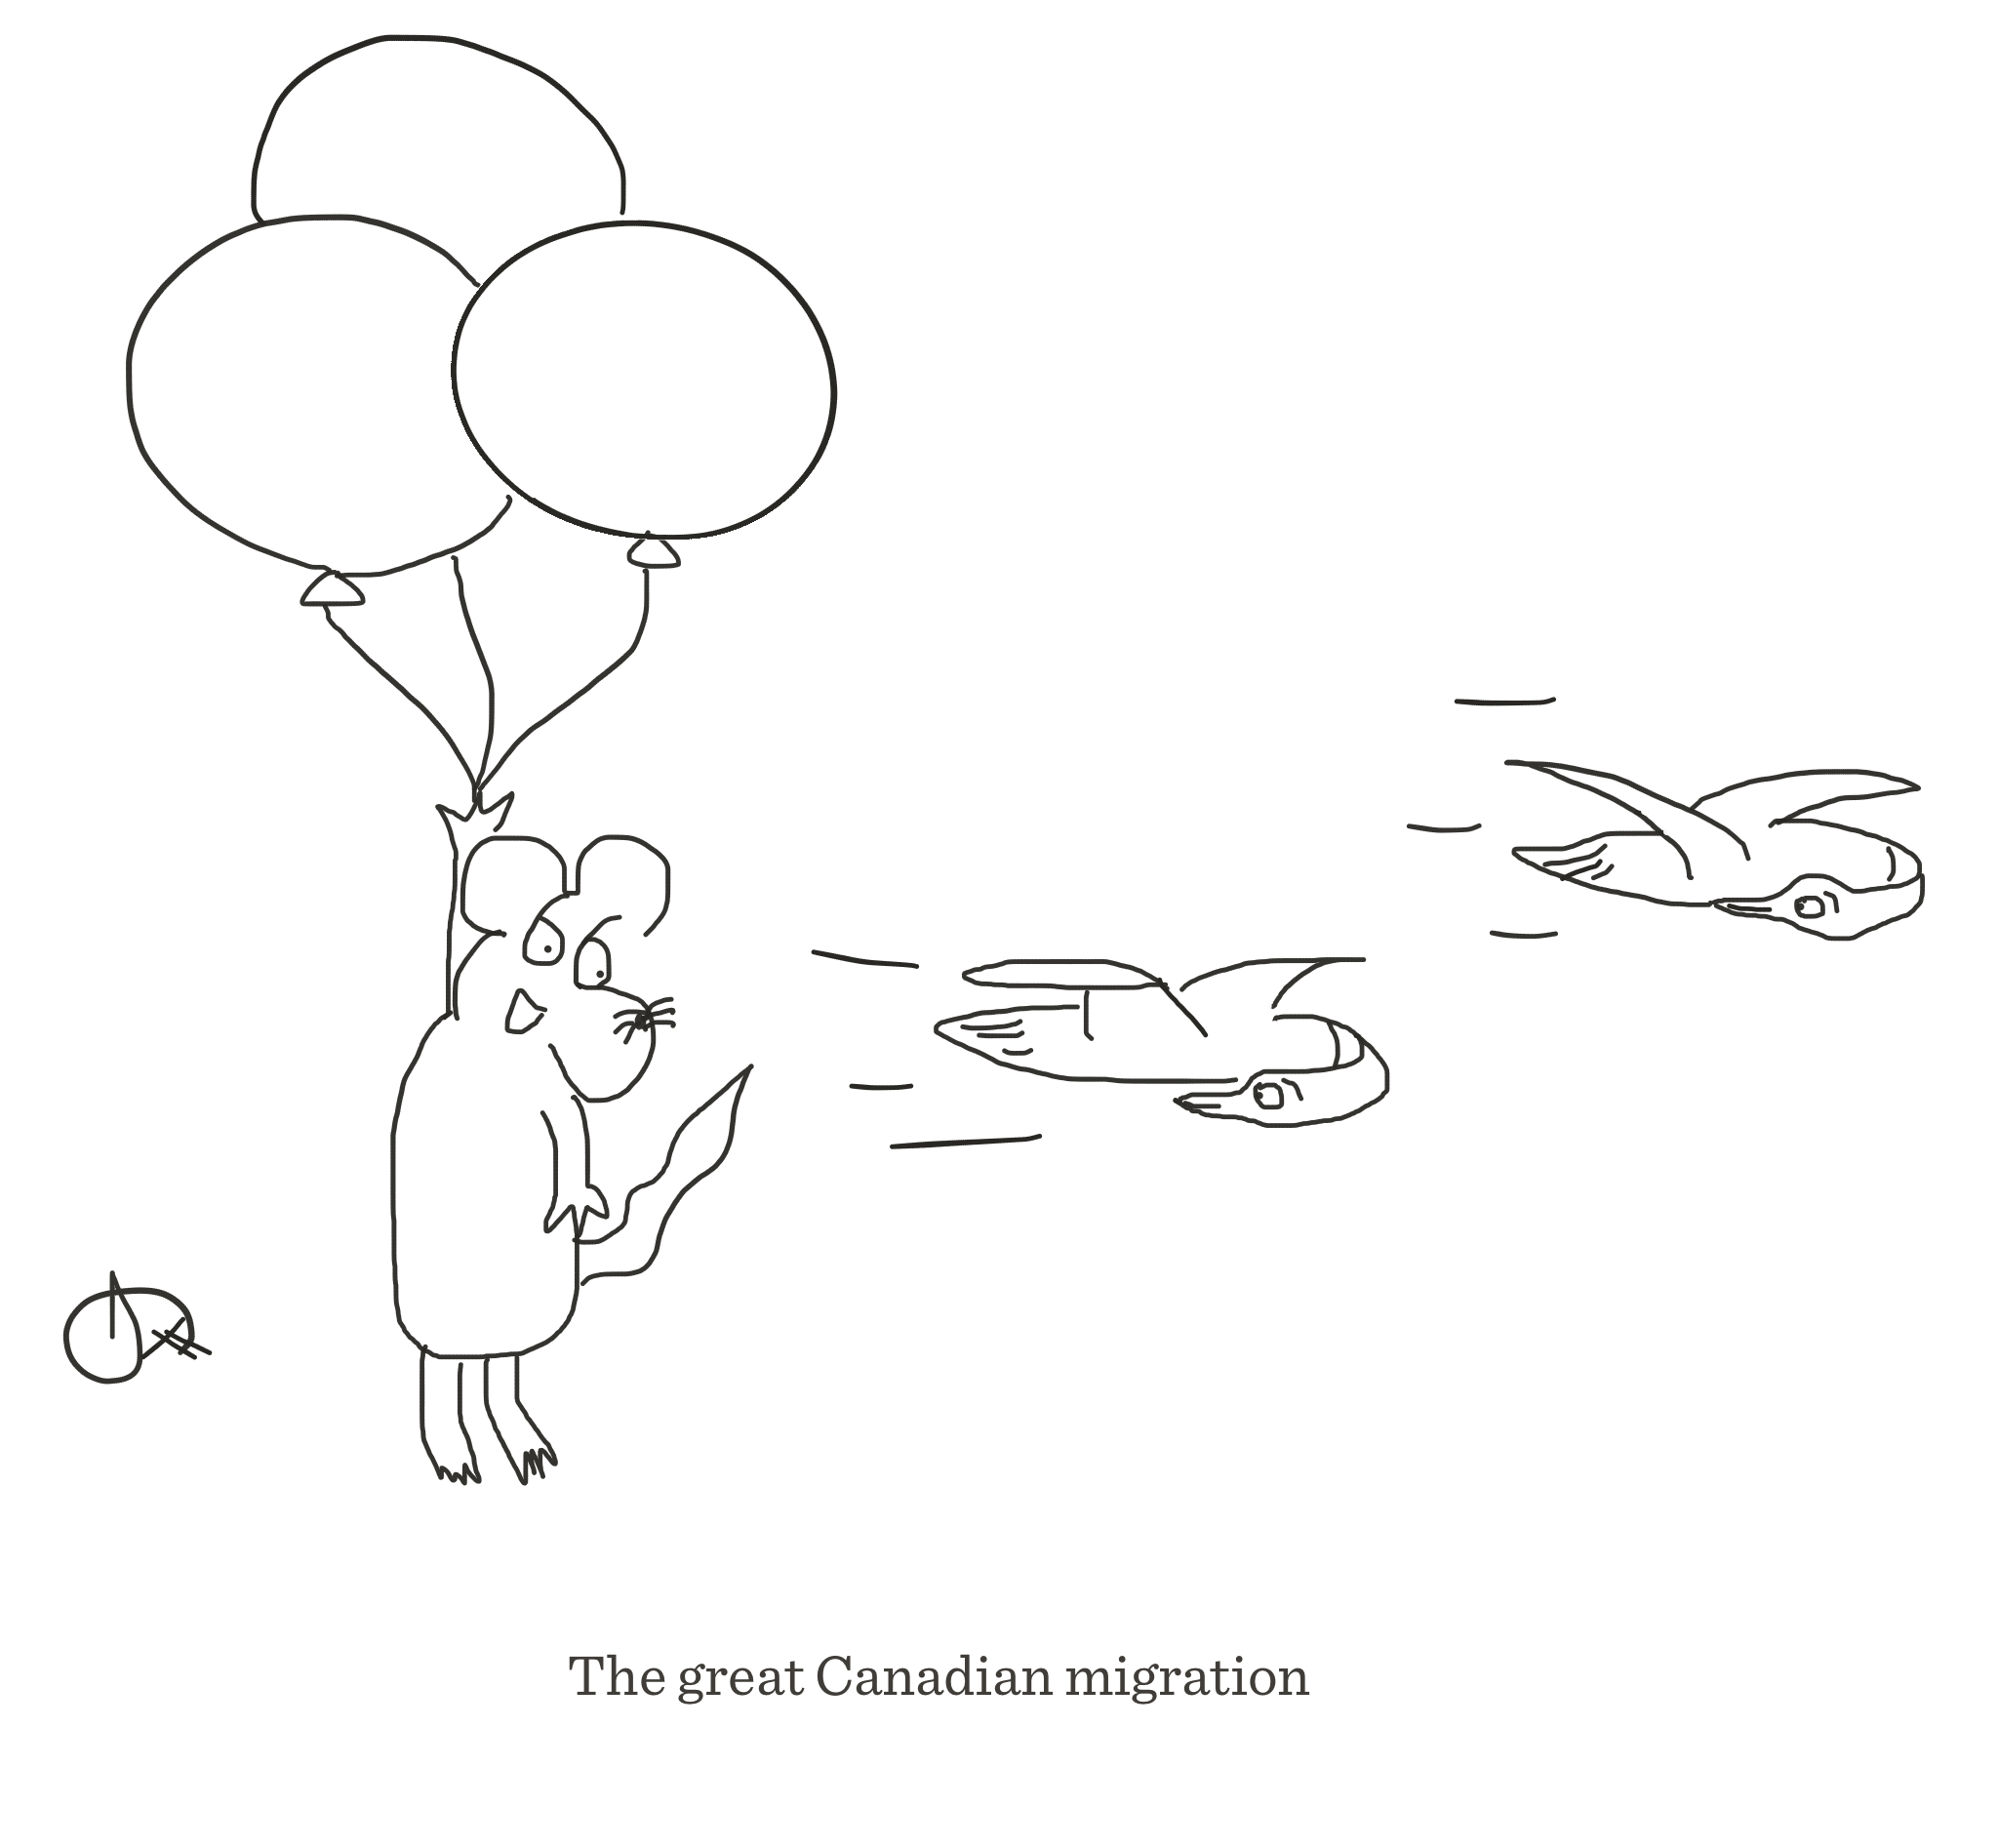 The great Canadian migration, The Happy Rat cartoon